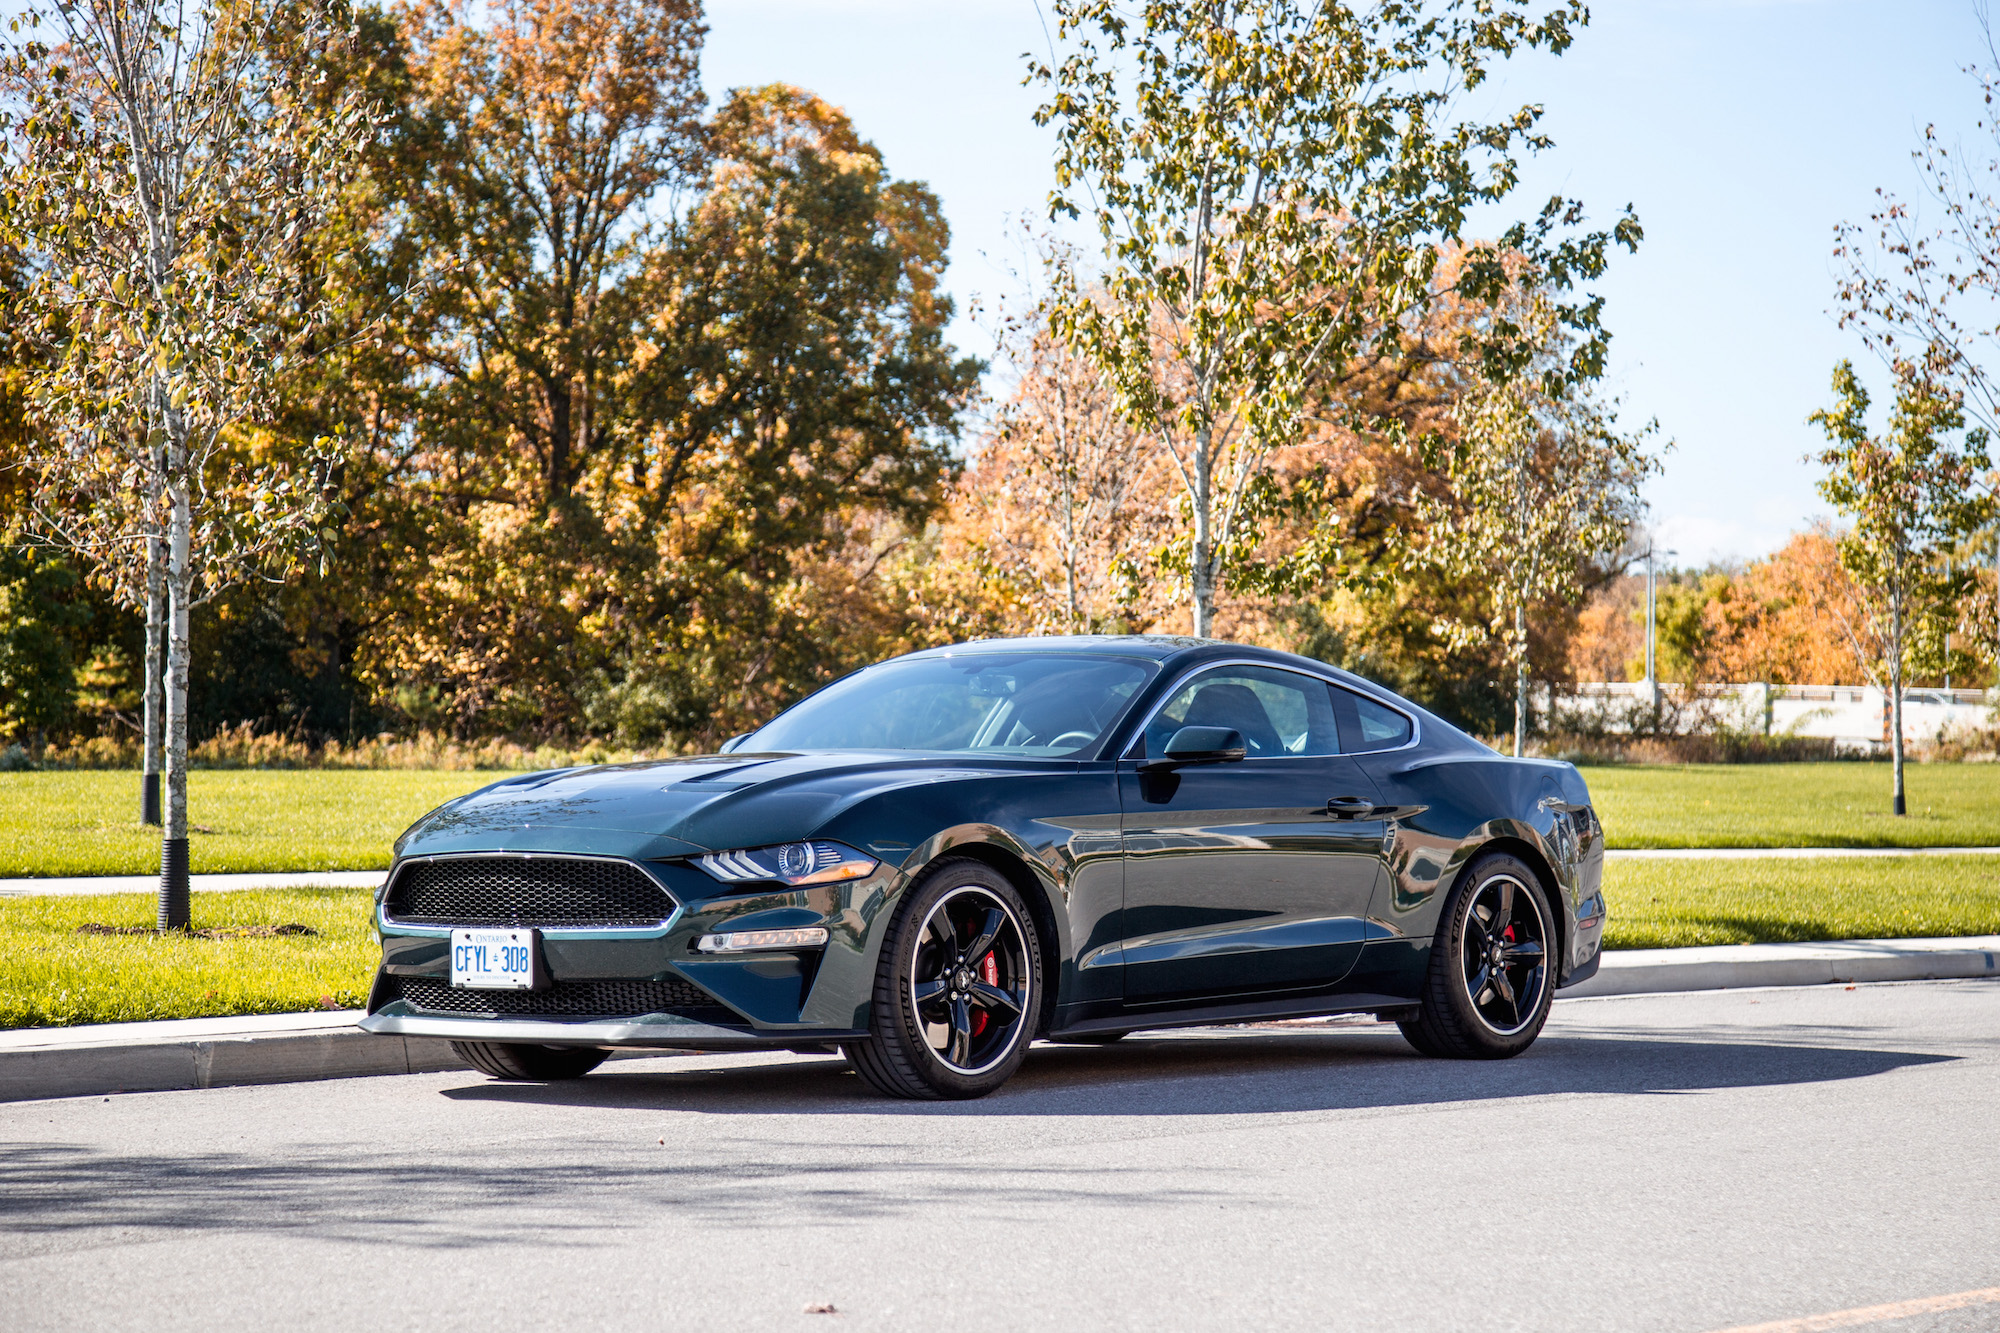 review 2019 ford mustang bullitt car. Black Bedroom Furniture Sets. Home Design Ideas